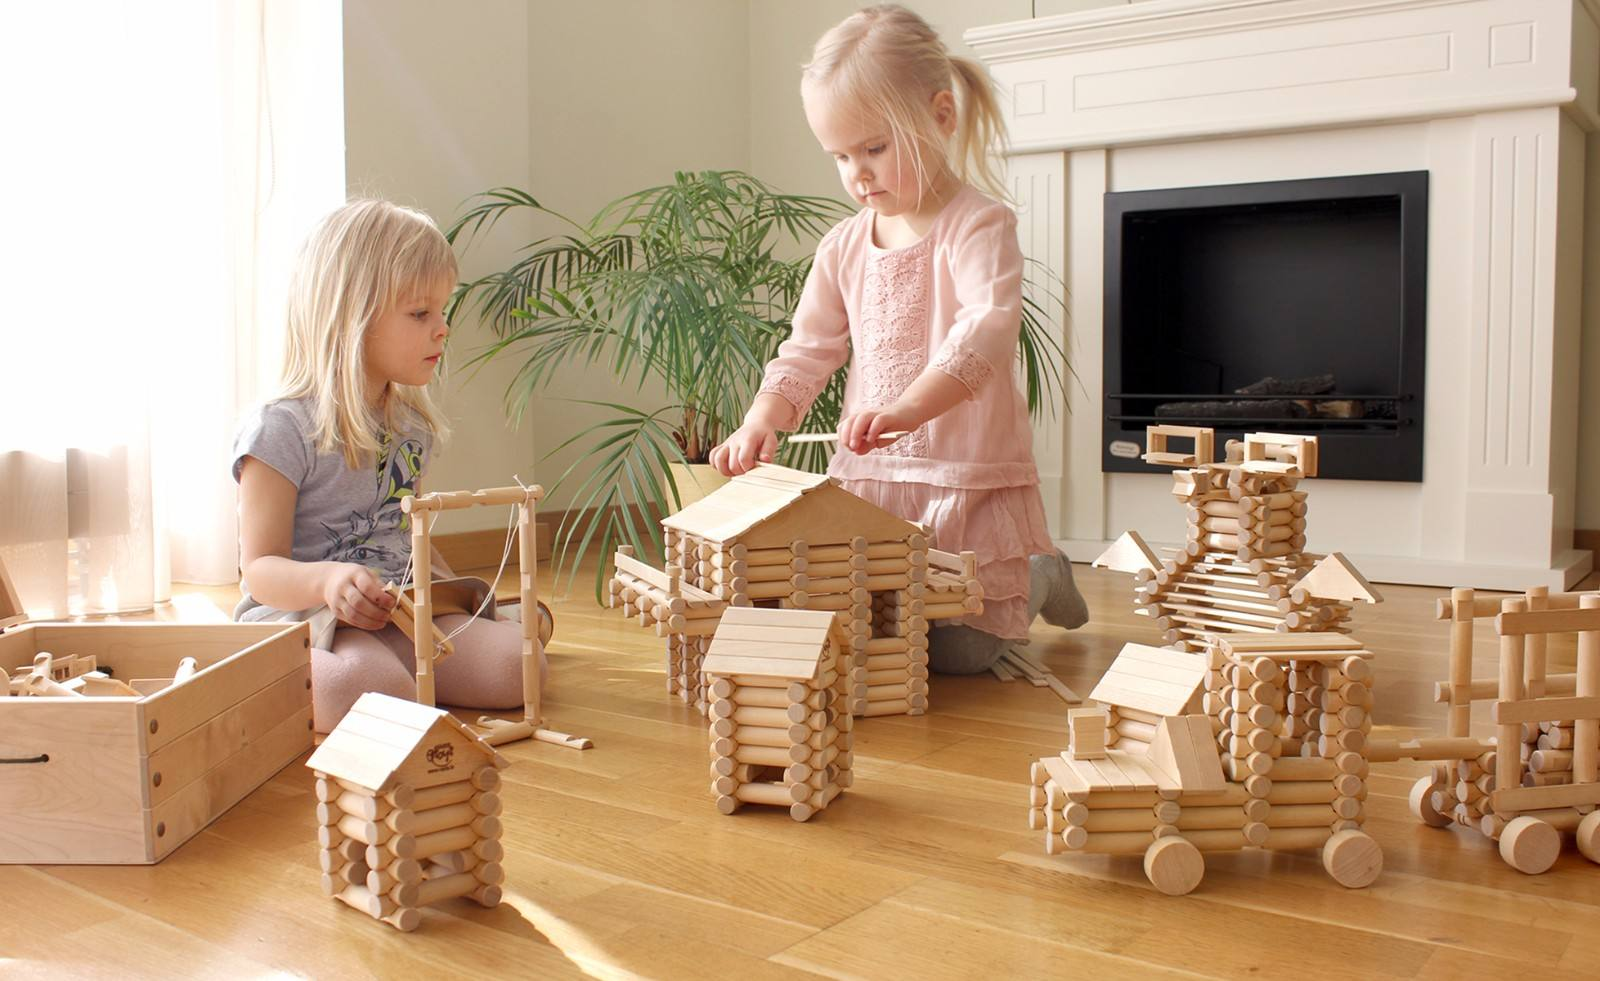 Kids_Construction Set__34.jpg